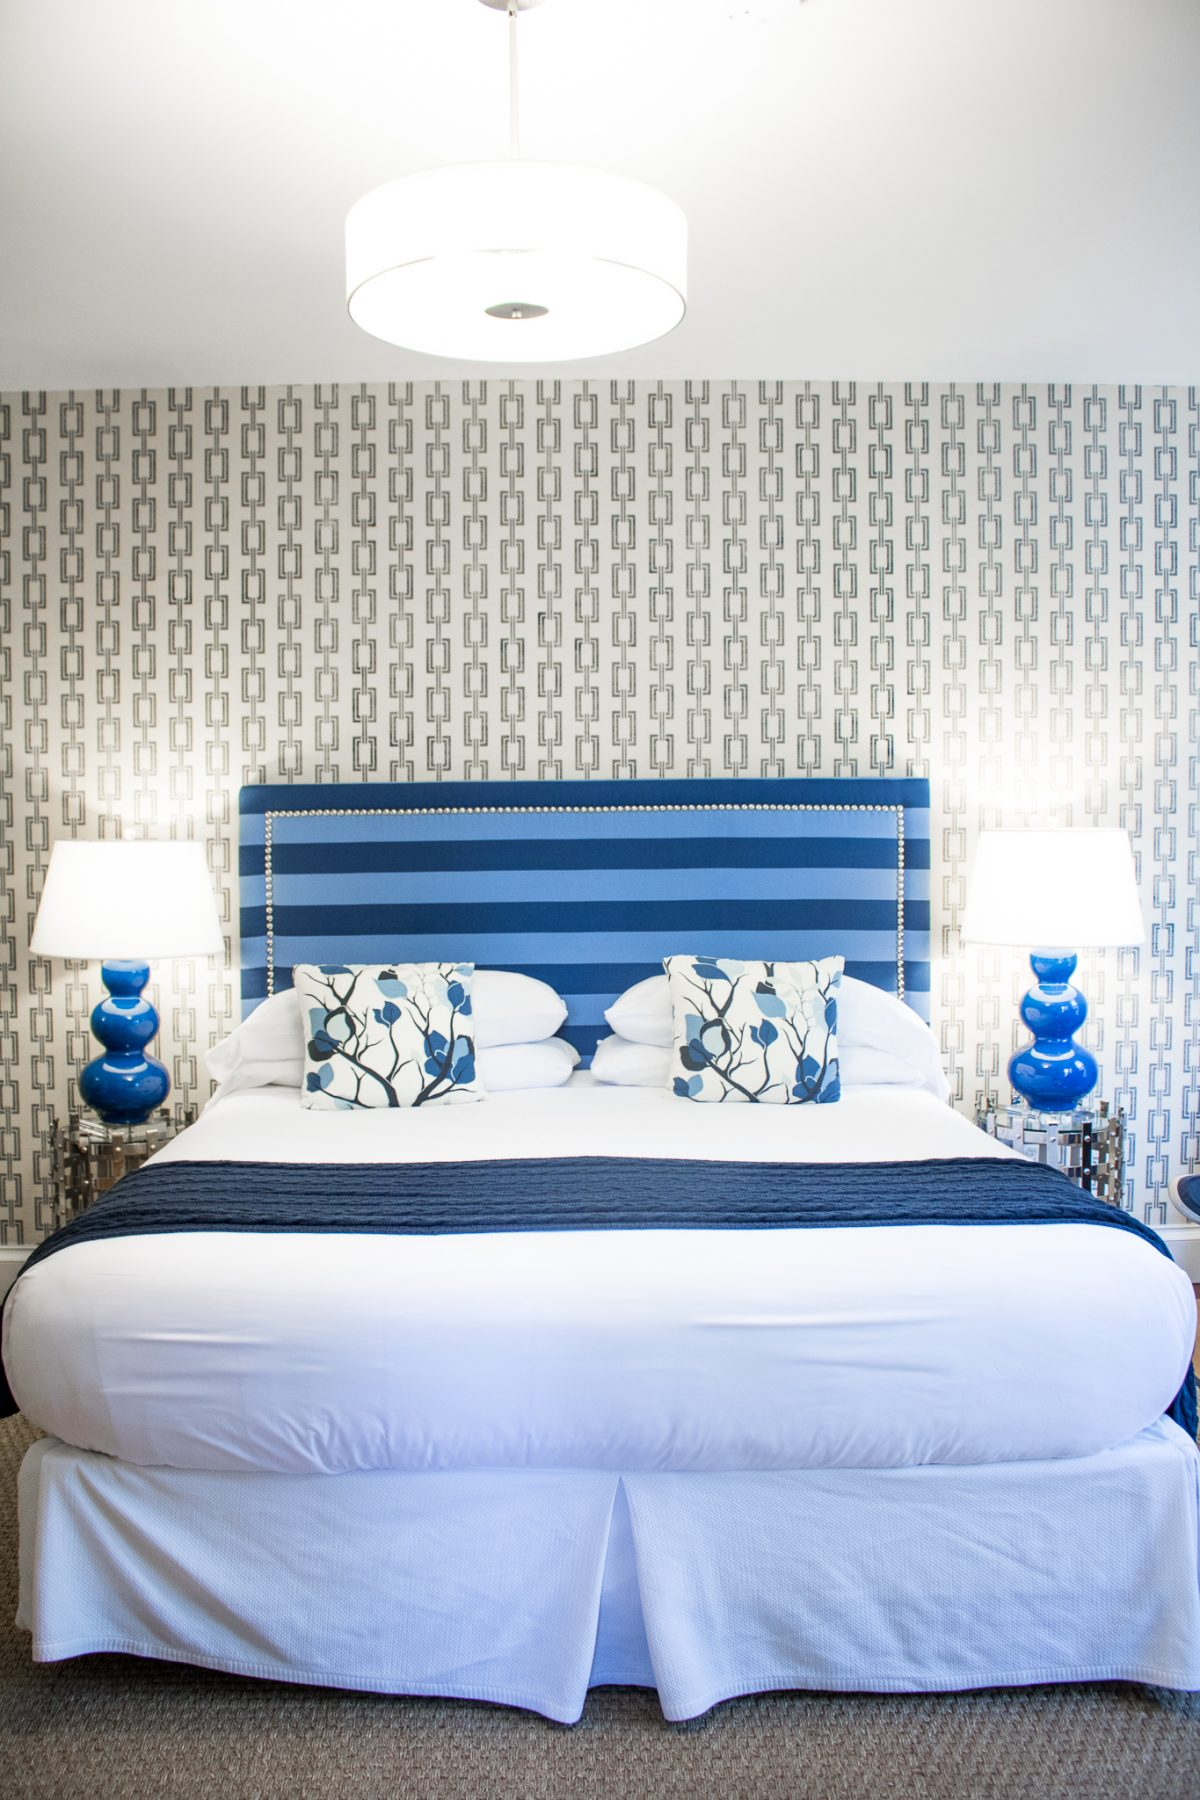 King size bed with blue stripe headboard, white comforter, cable knit blue throw, blue floral pillows, and blue lamps on either side of the bed